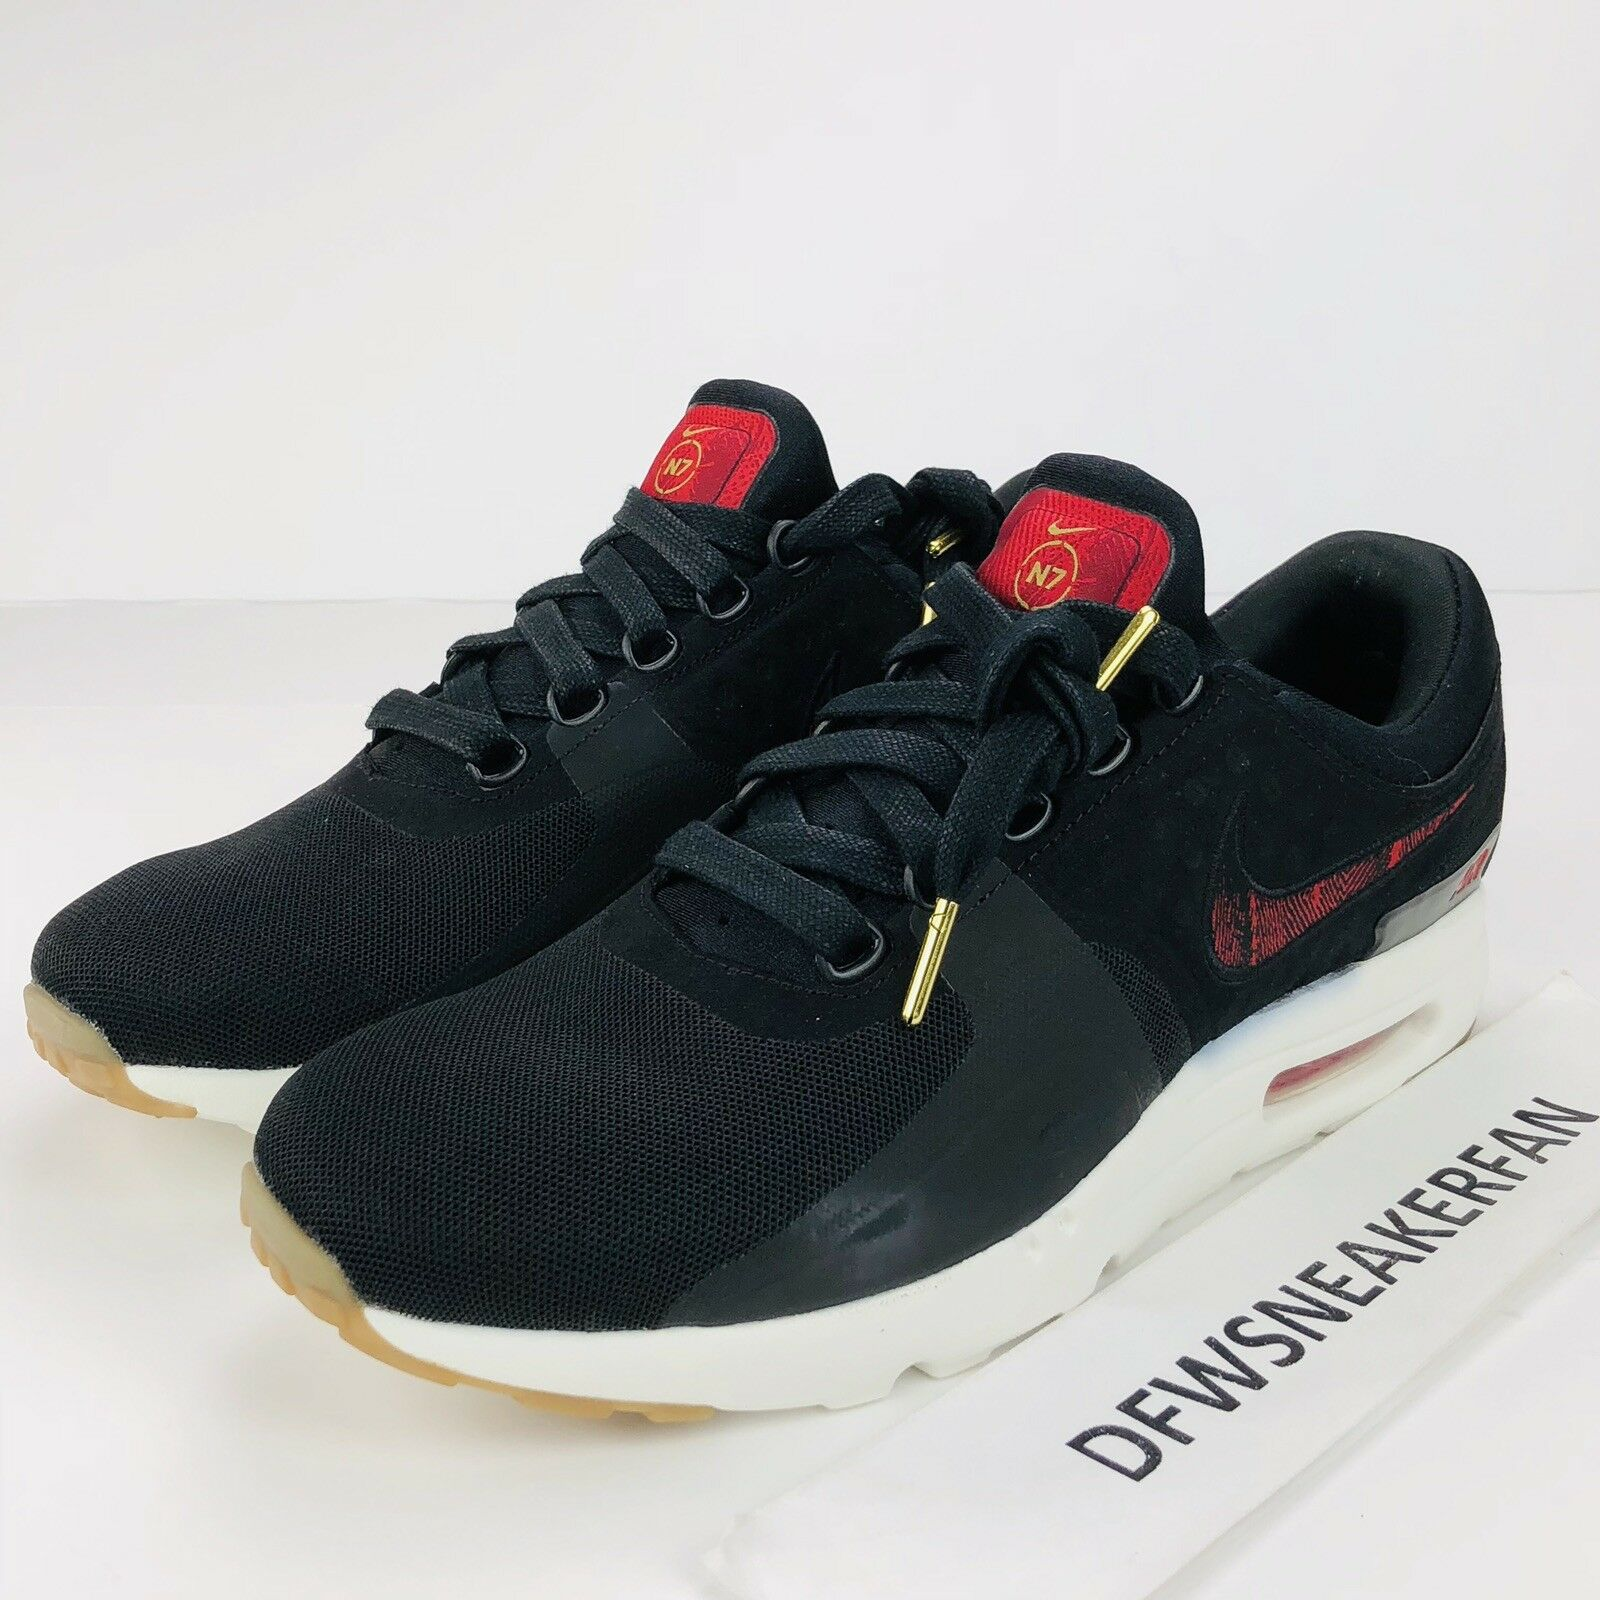 Nike Air Max Zero N7 Men's Size 9.5 Black University Red Gum 924449-001 New